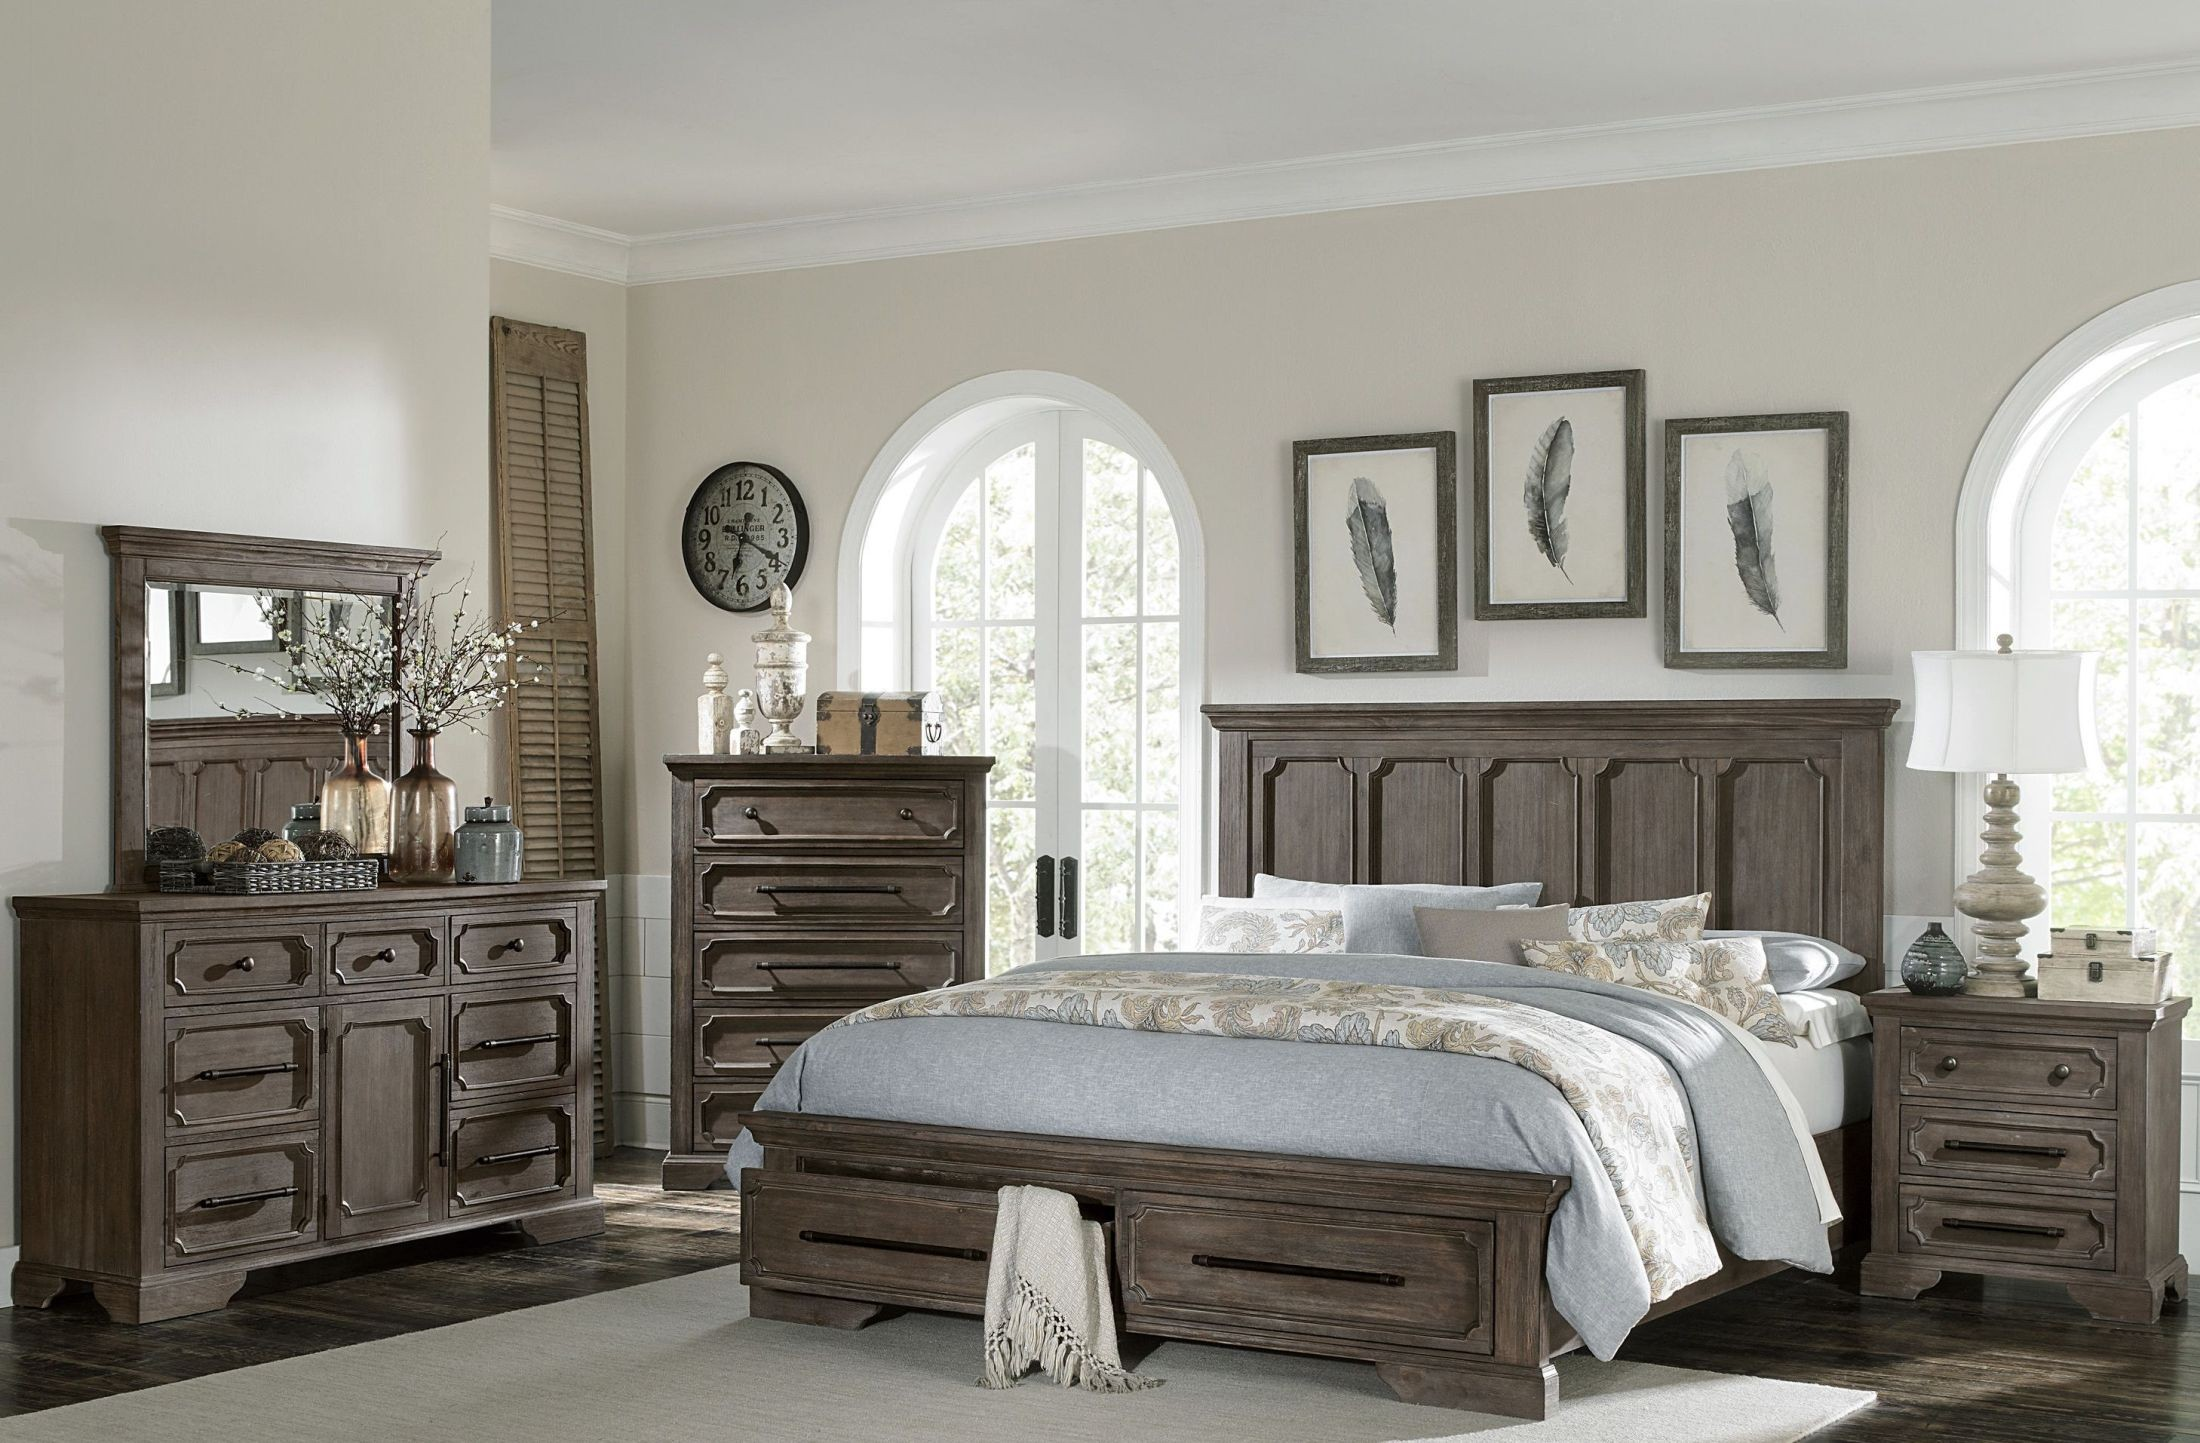 toulon unique rustic storage bedroom set from homelegance. Black Bedroom Furniture Sets. Home Design Ideas